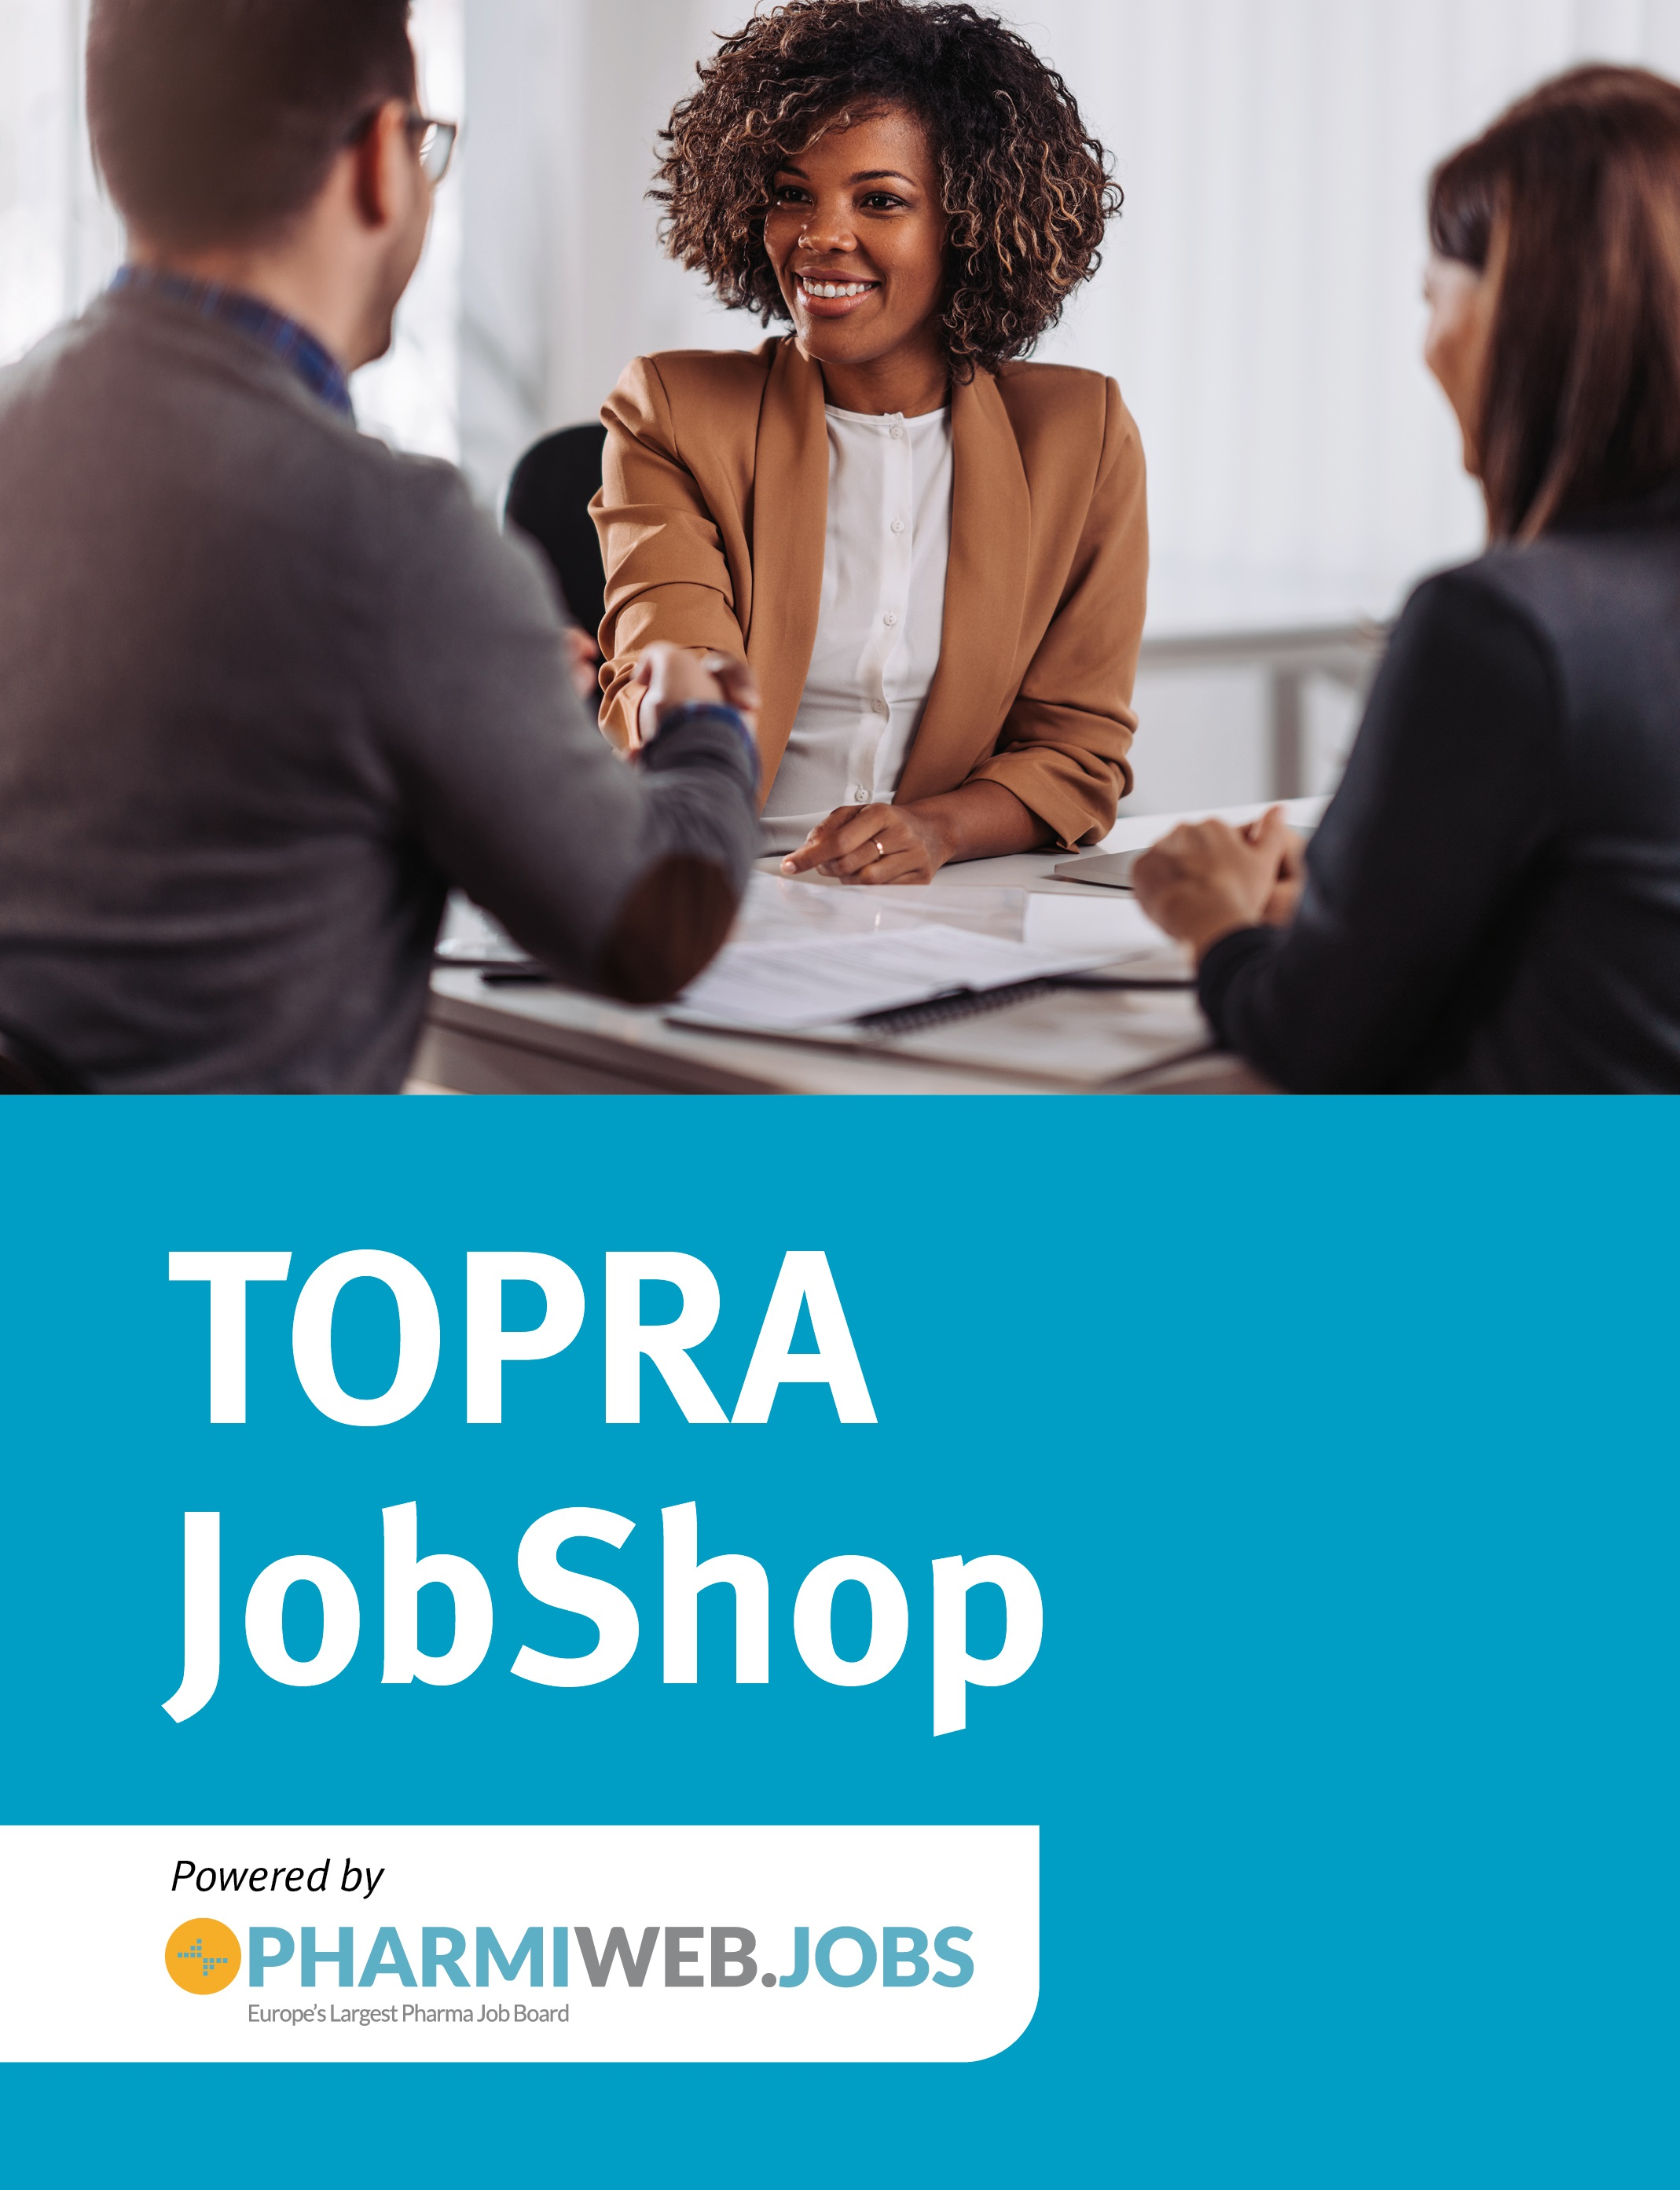 TOPRA Job Shop powered by PharmiWeb